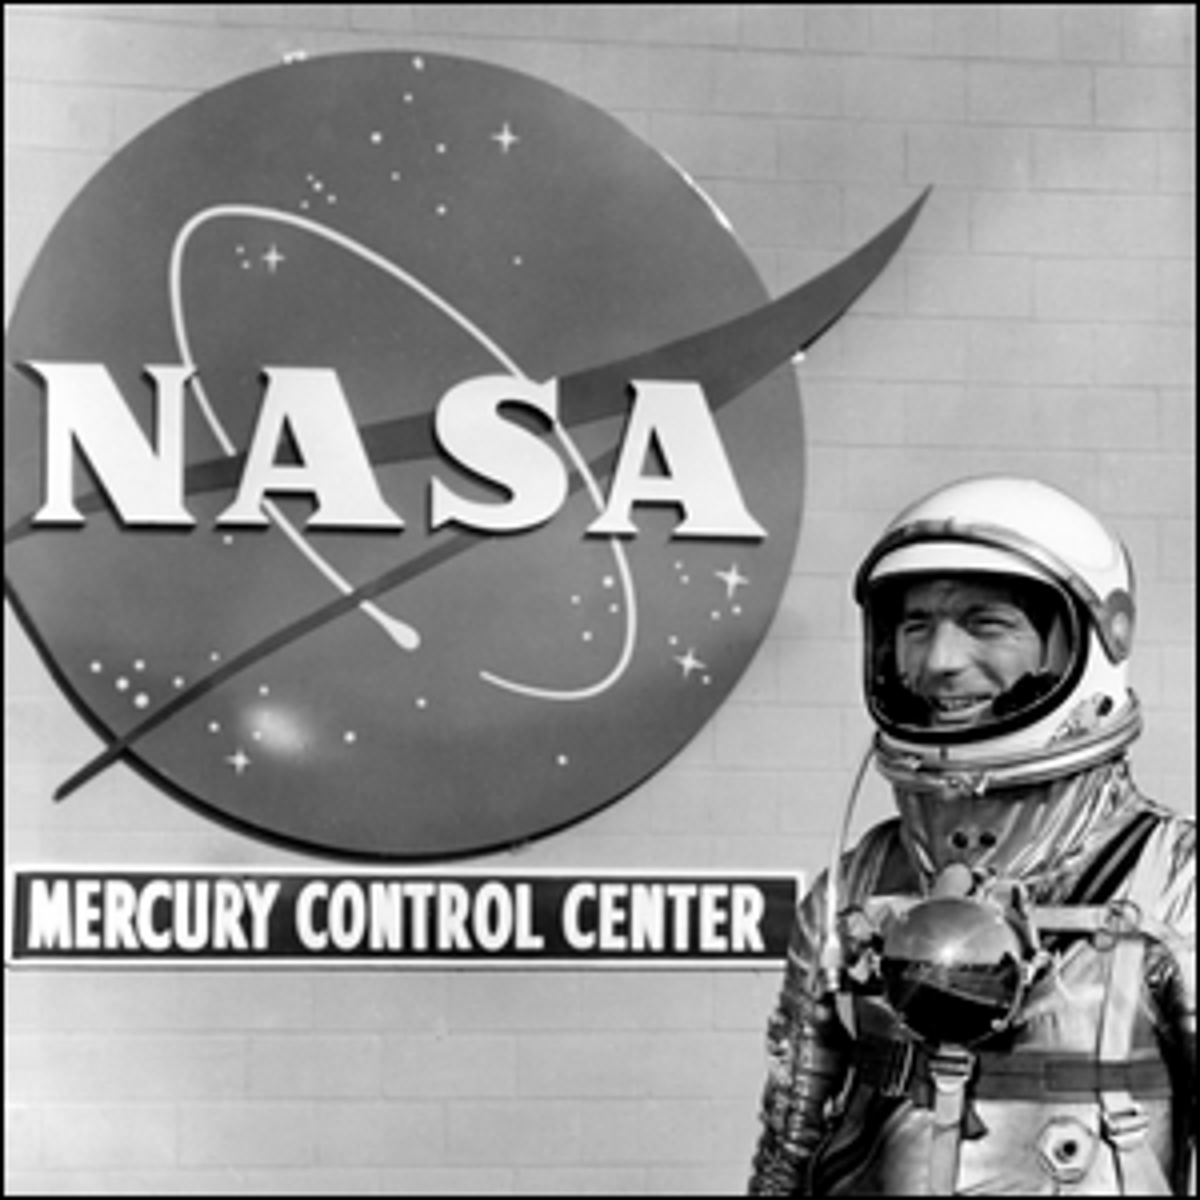 Mercury astronaut Scott Carpenter standing in front of the NASA insignia at Cape Canaveral.